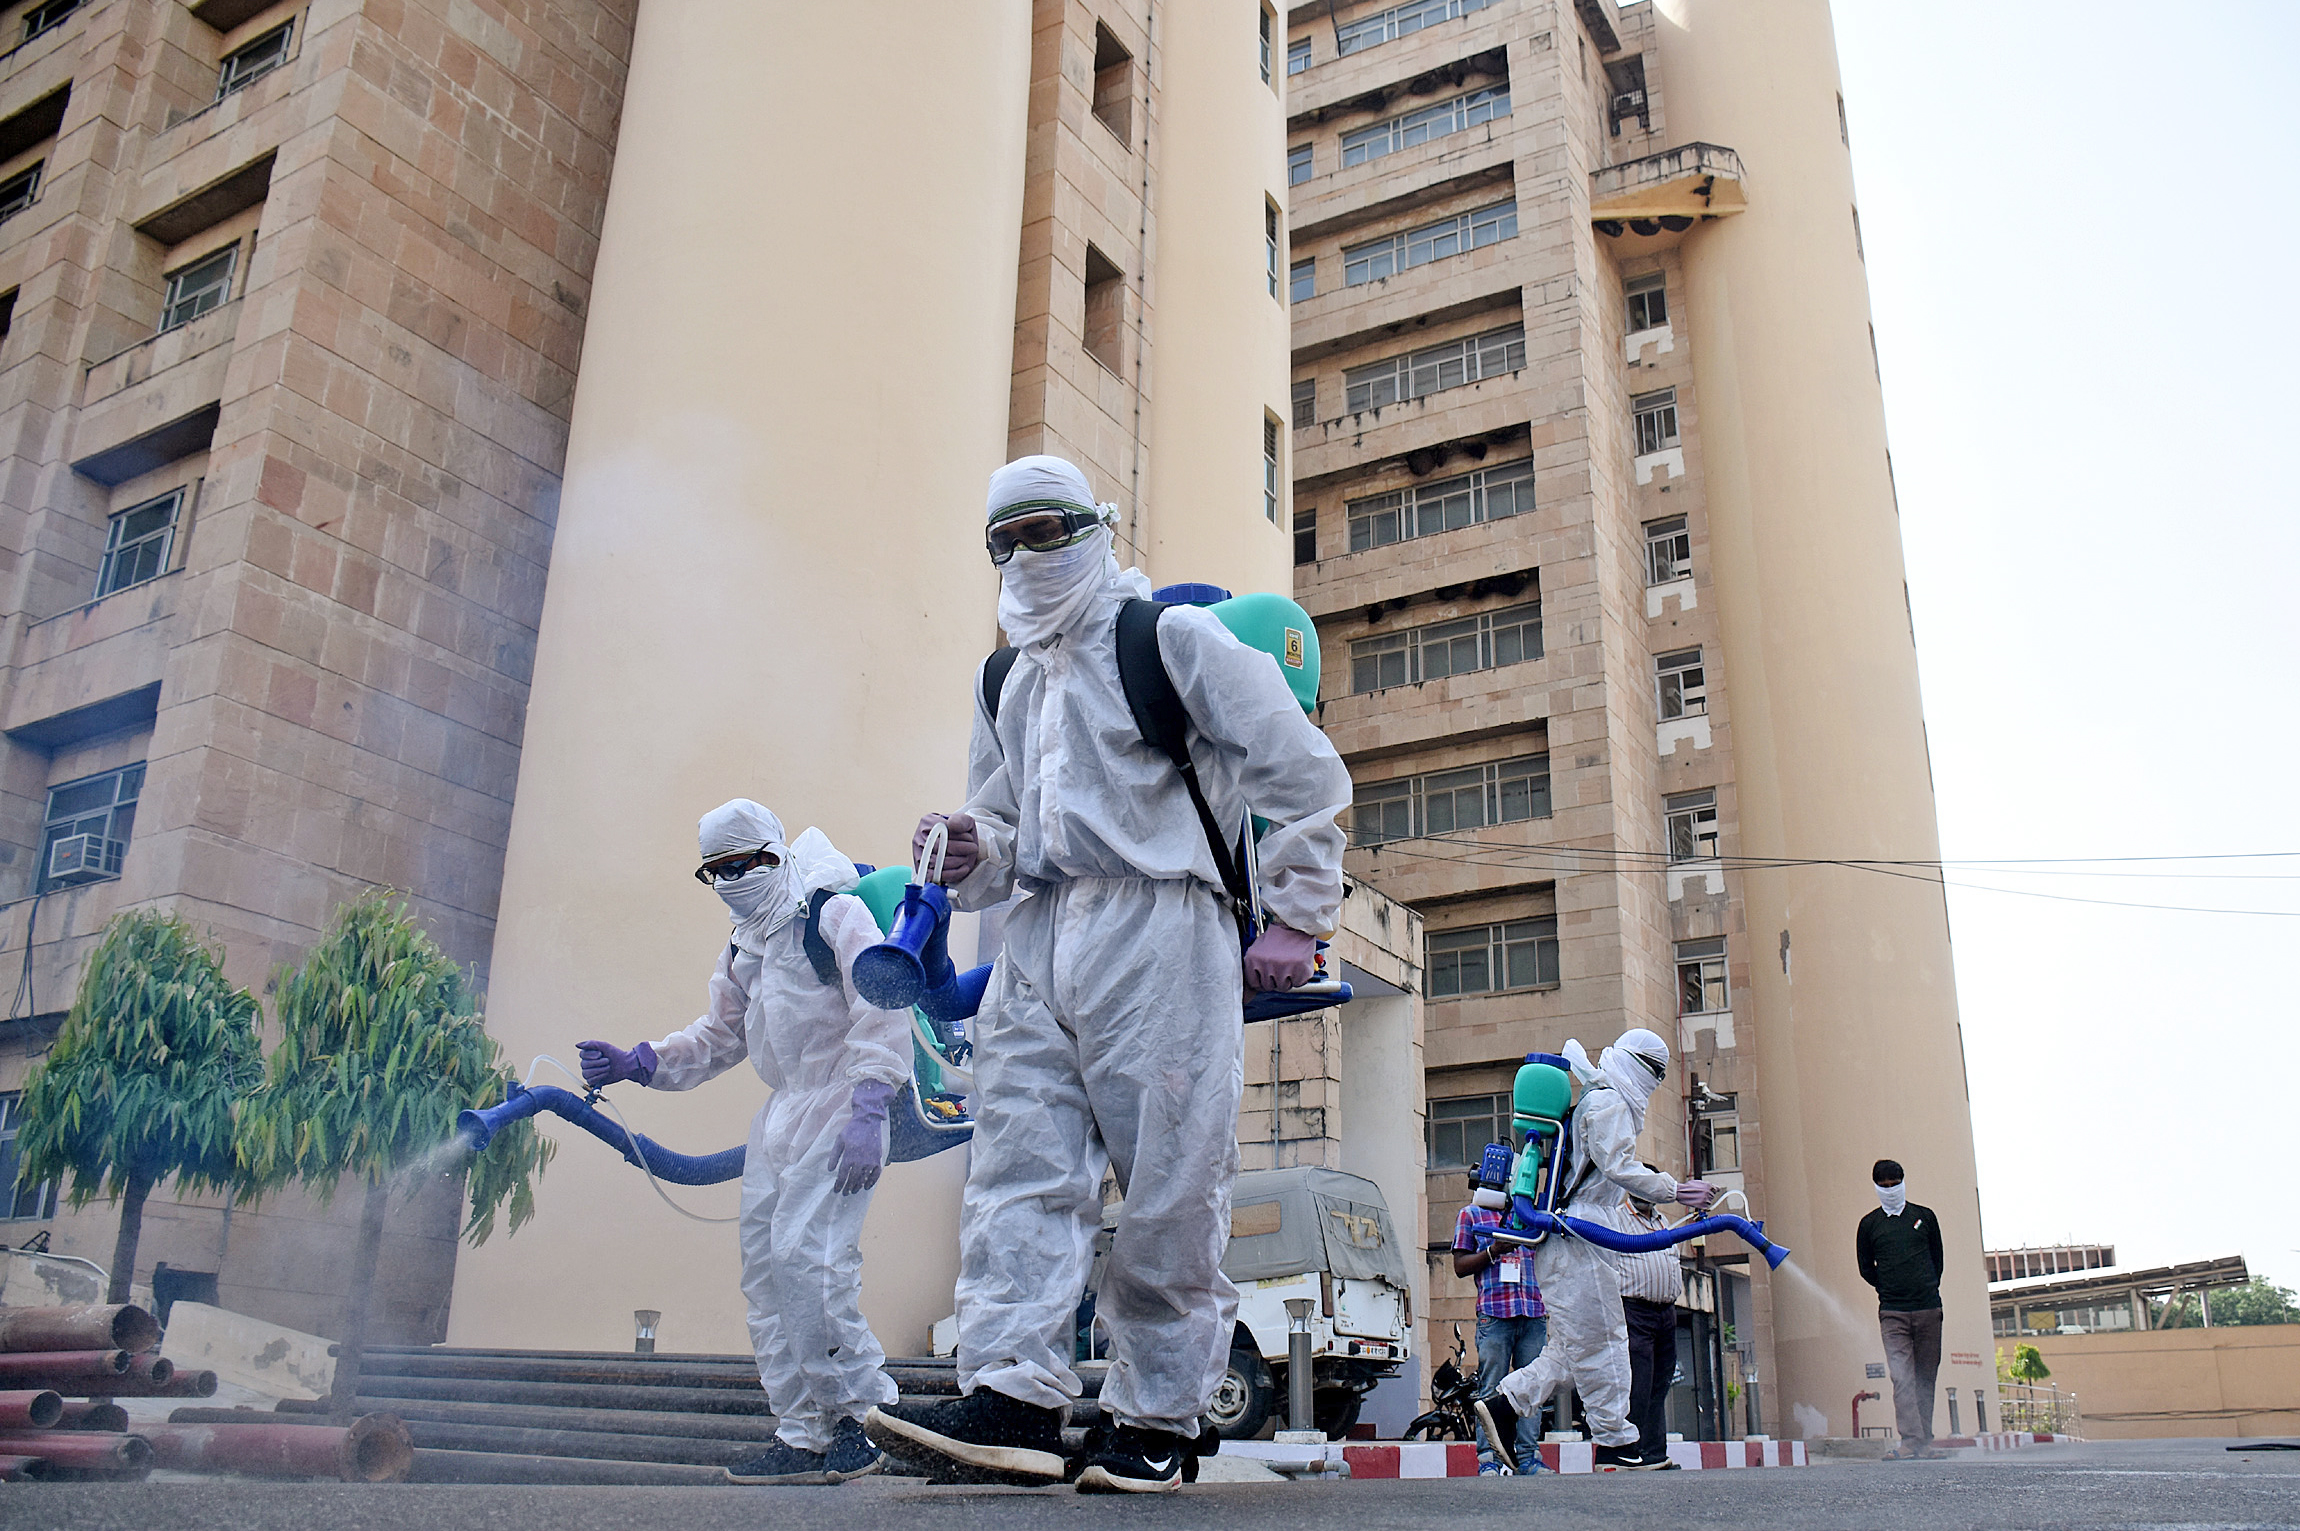 Municipal workers spray disinfectant at Bapu Bhavan Secretariat building as government-imposed nationwide lockdown to take preventive measures against the spread of the Coronavirus, in Lucknow on Sunday.